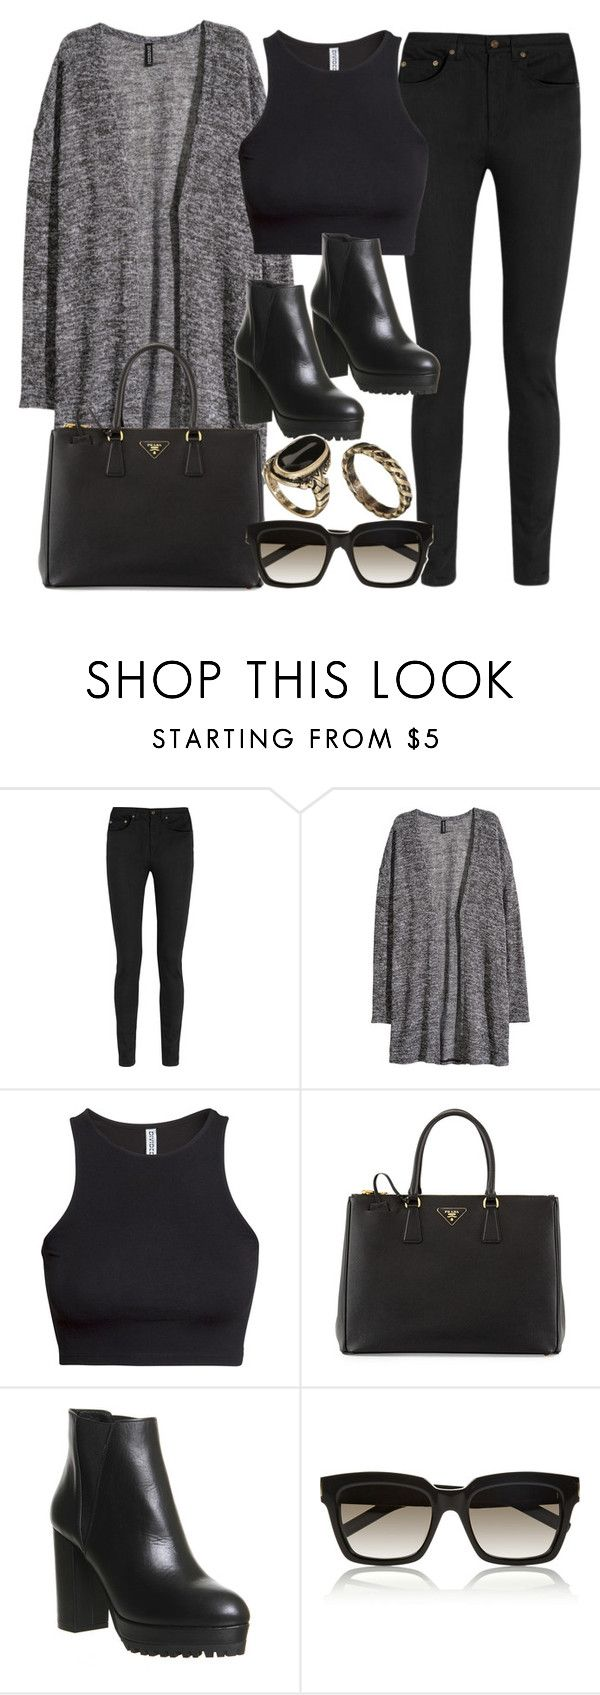 """Style #11037"" by vany-alvarado ❤ liked on Polyvore featuring Yves Saint Laurent, H&M, Prada, Office and ASOS"